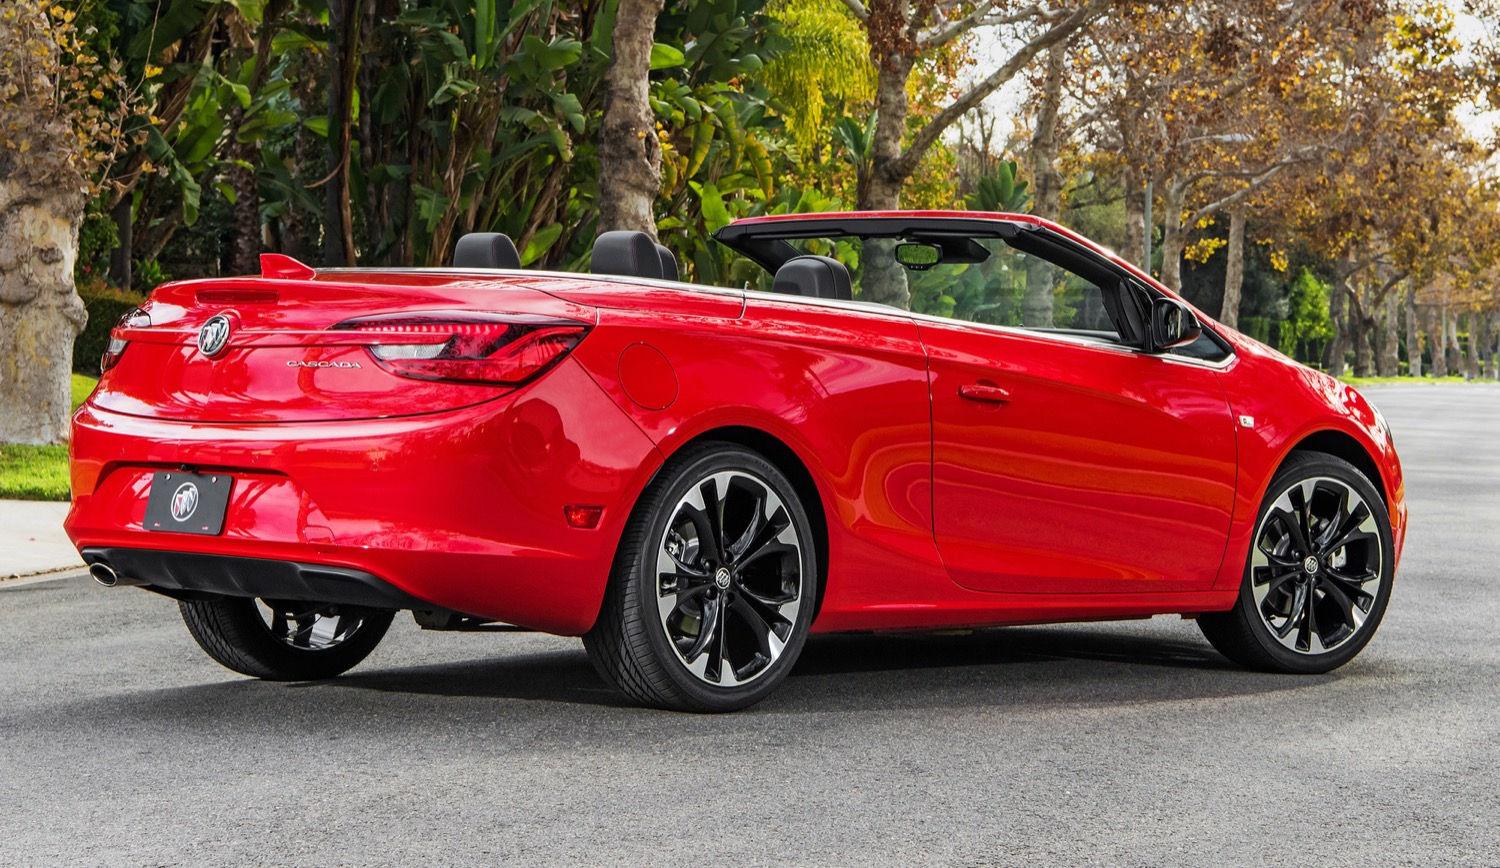 Buick Cascada Sales Numbers Q2 2019 | Gm Authority 2022 Buick Cascada Price, Reviews, Interior